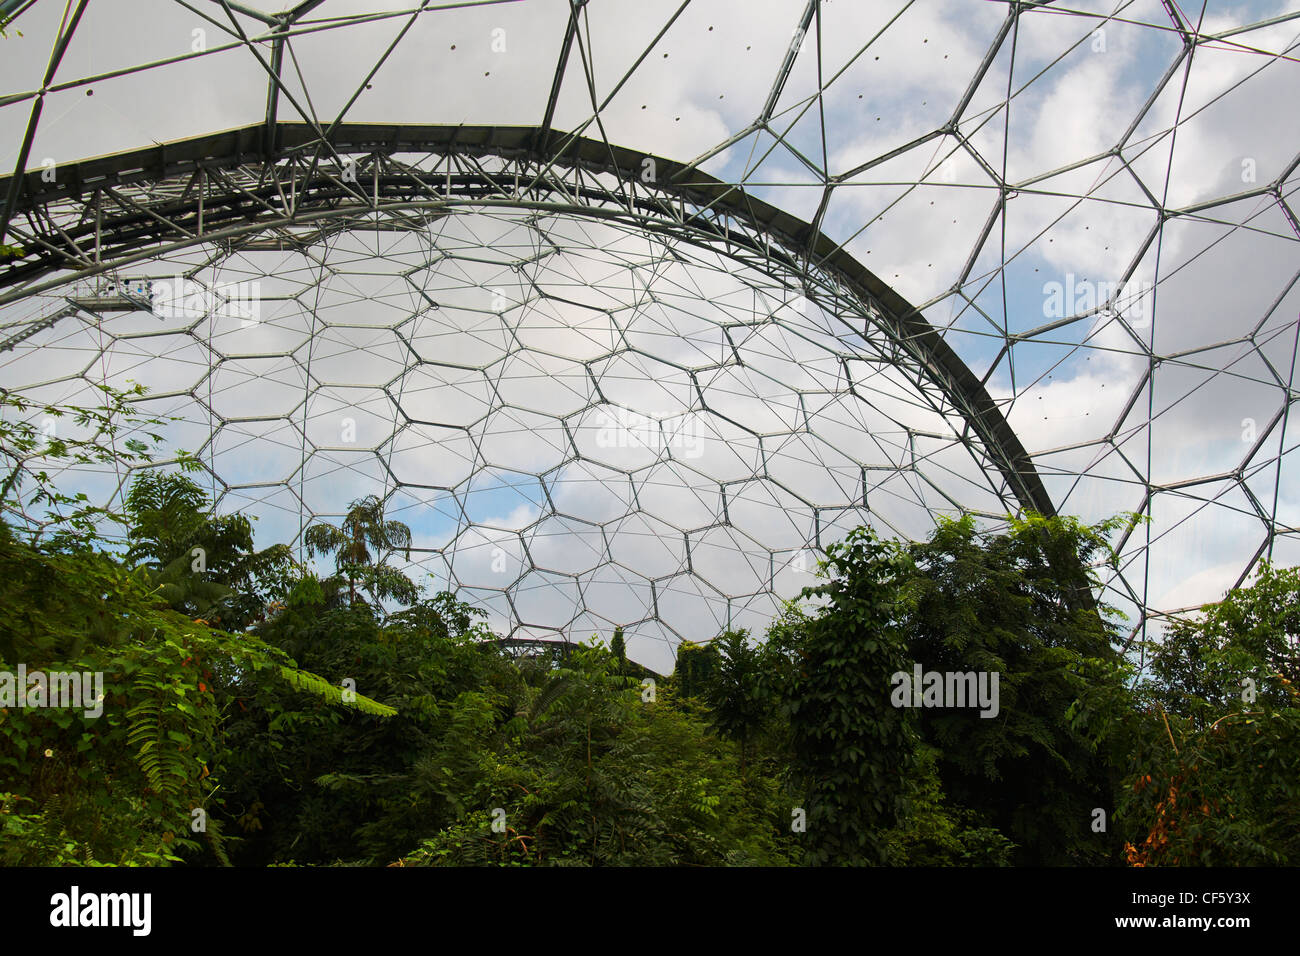 Looking to the sky through the hexagonal cladding panels covering a biome at the Eden Project. The biomes allow - Stock Image